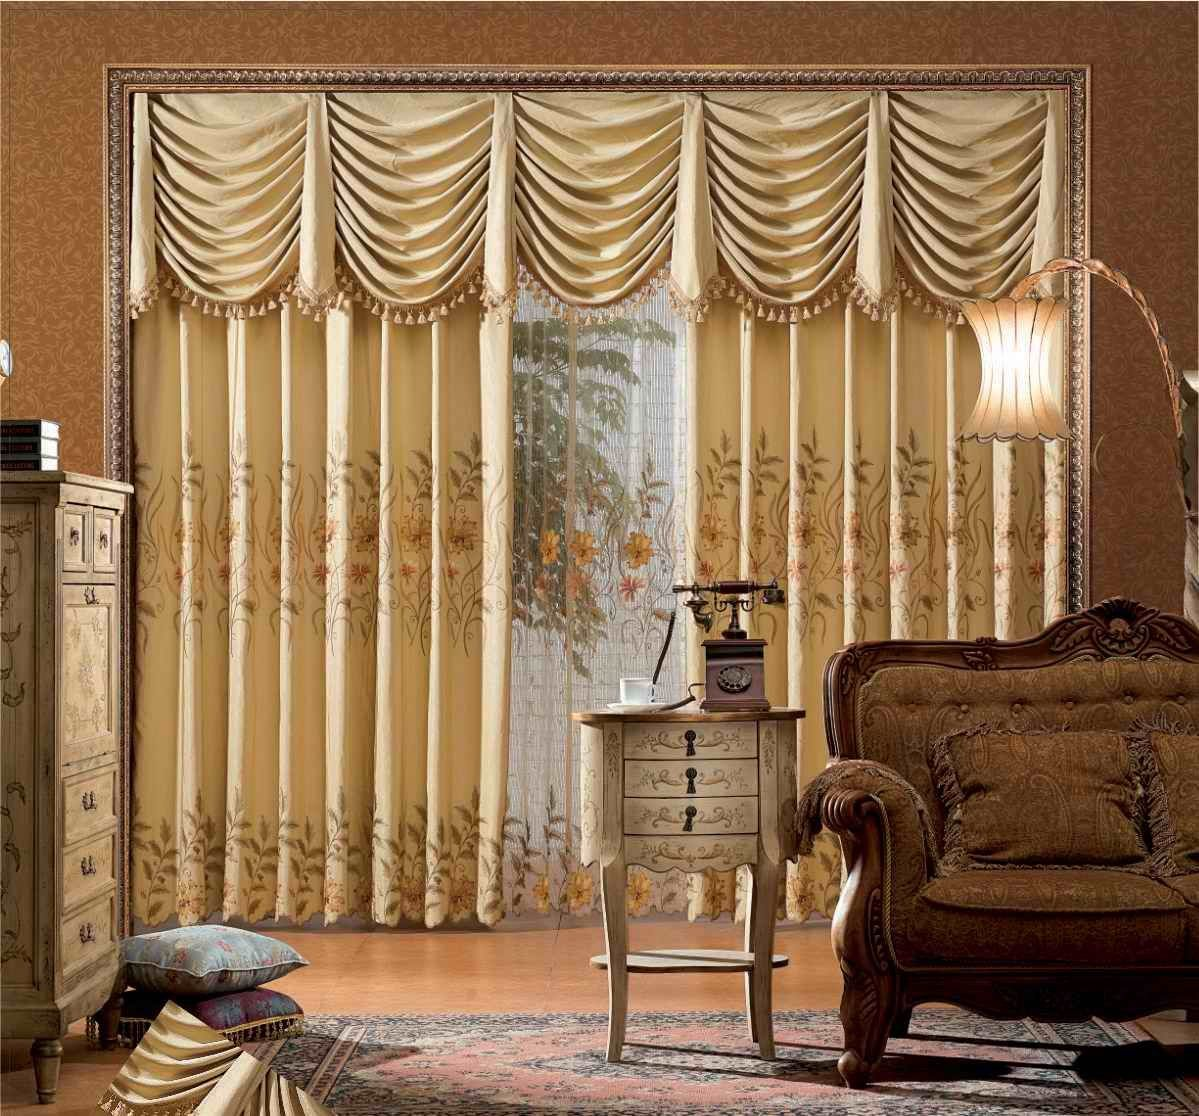 Living Room Curtains Design Unique Make Modern Living Room Curtains  Httphighlifestylewp Review